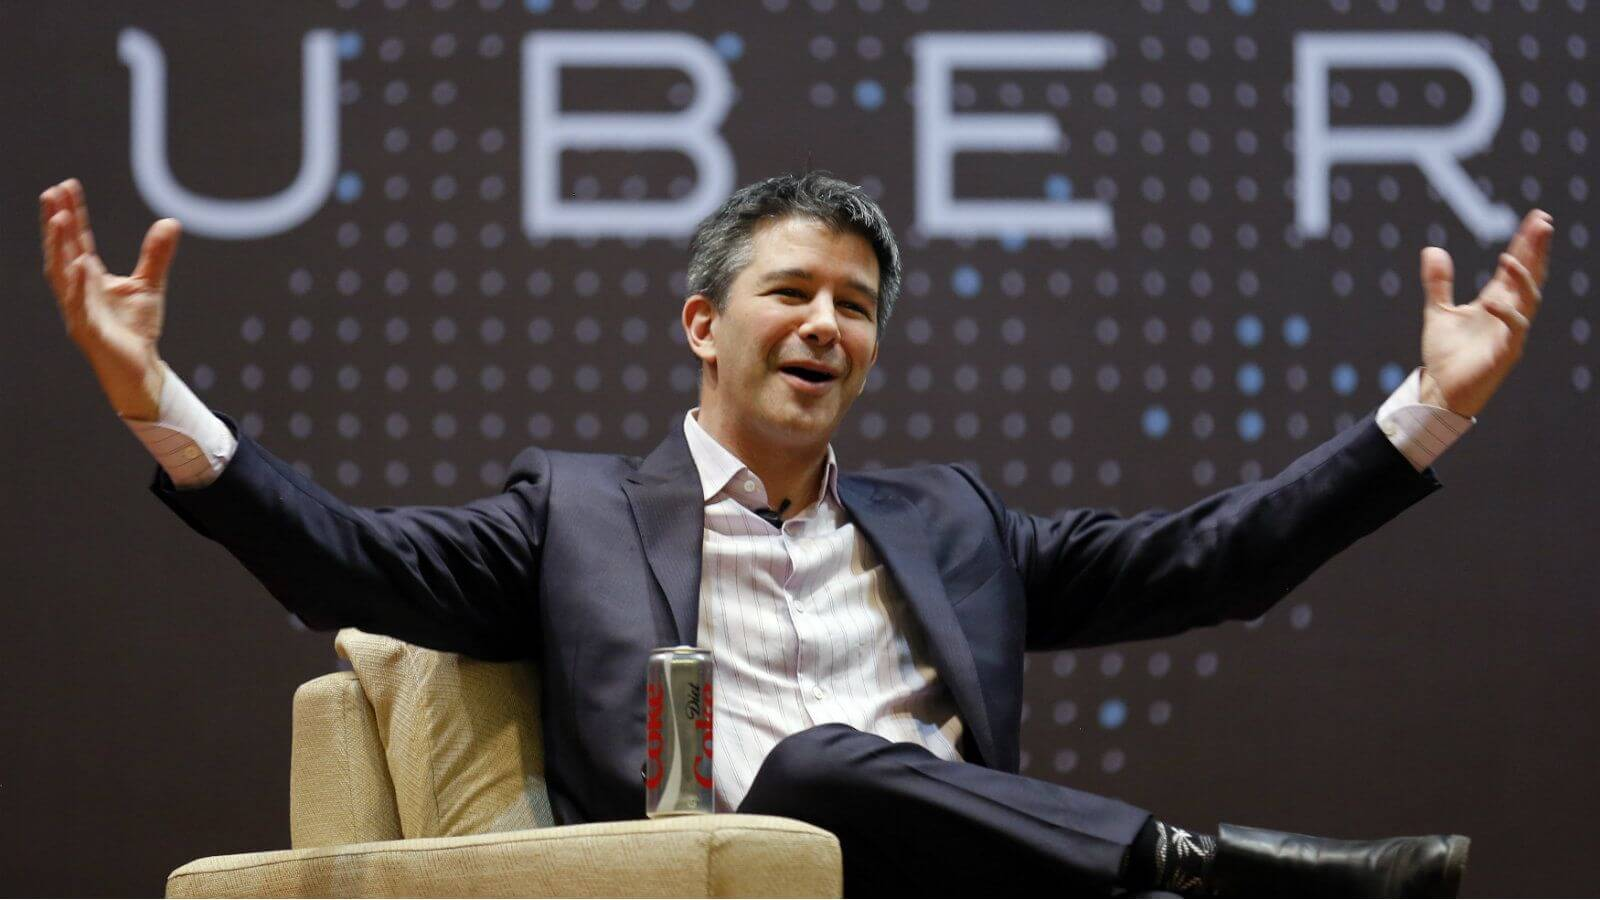 Uber CEO takes leave of absence amid shakeup